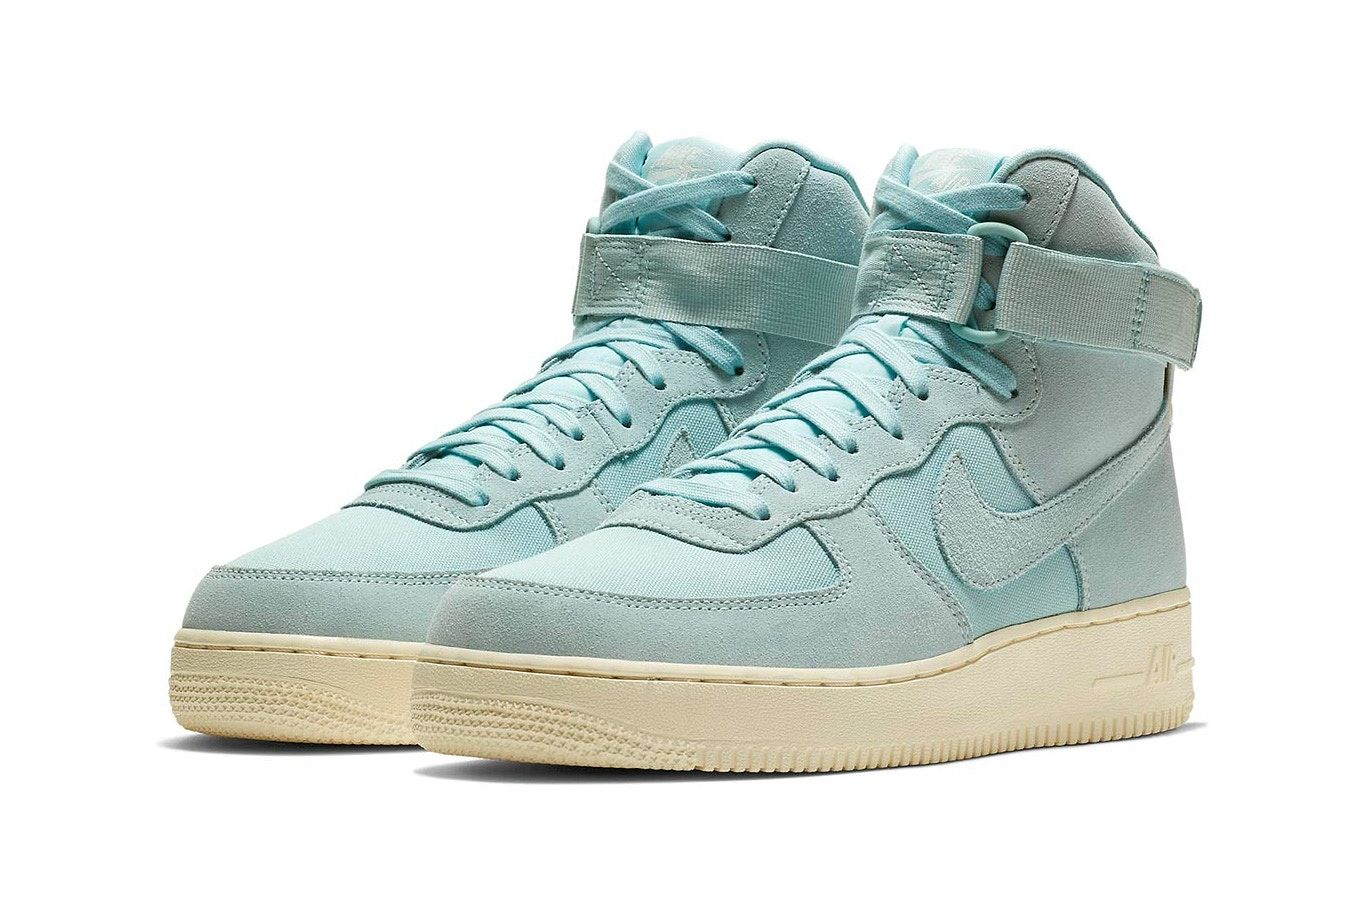 innovative design cfffe 91483 Nike's Air Force 1 High Gets a Tonal Suede Upgrade, 2019 ...